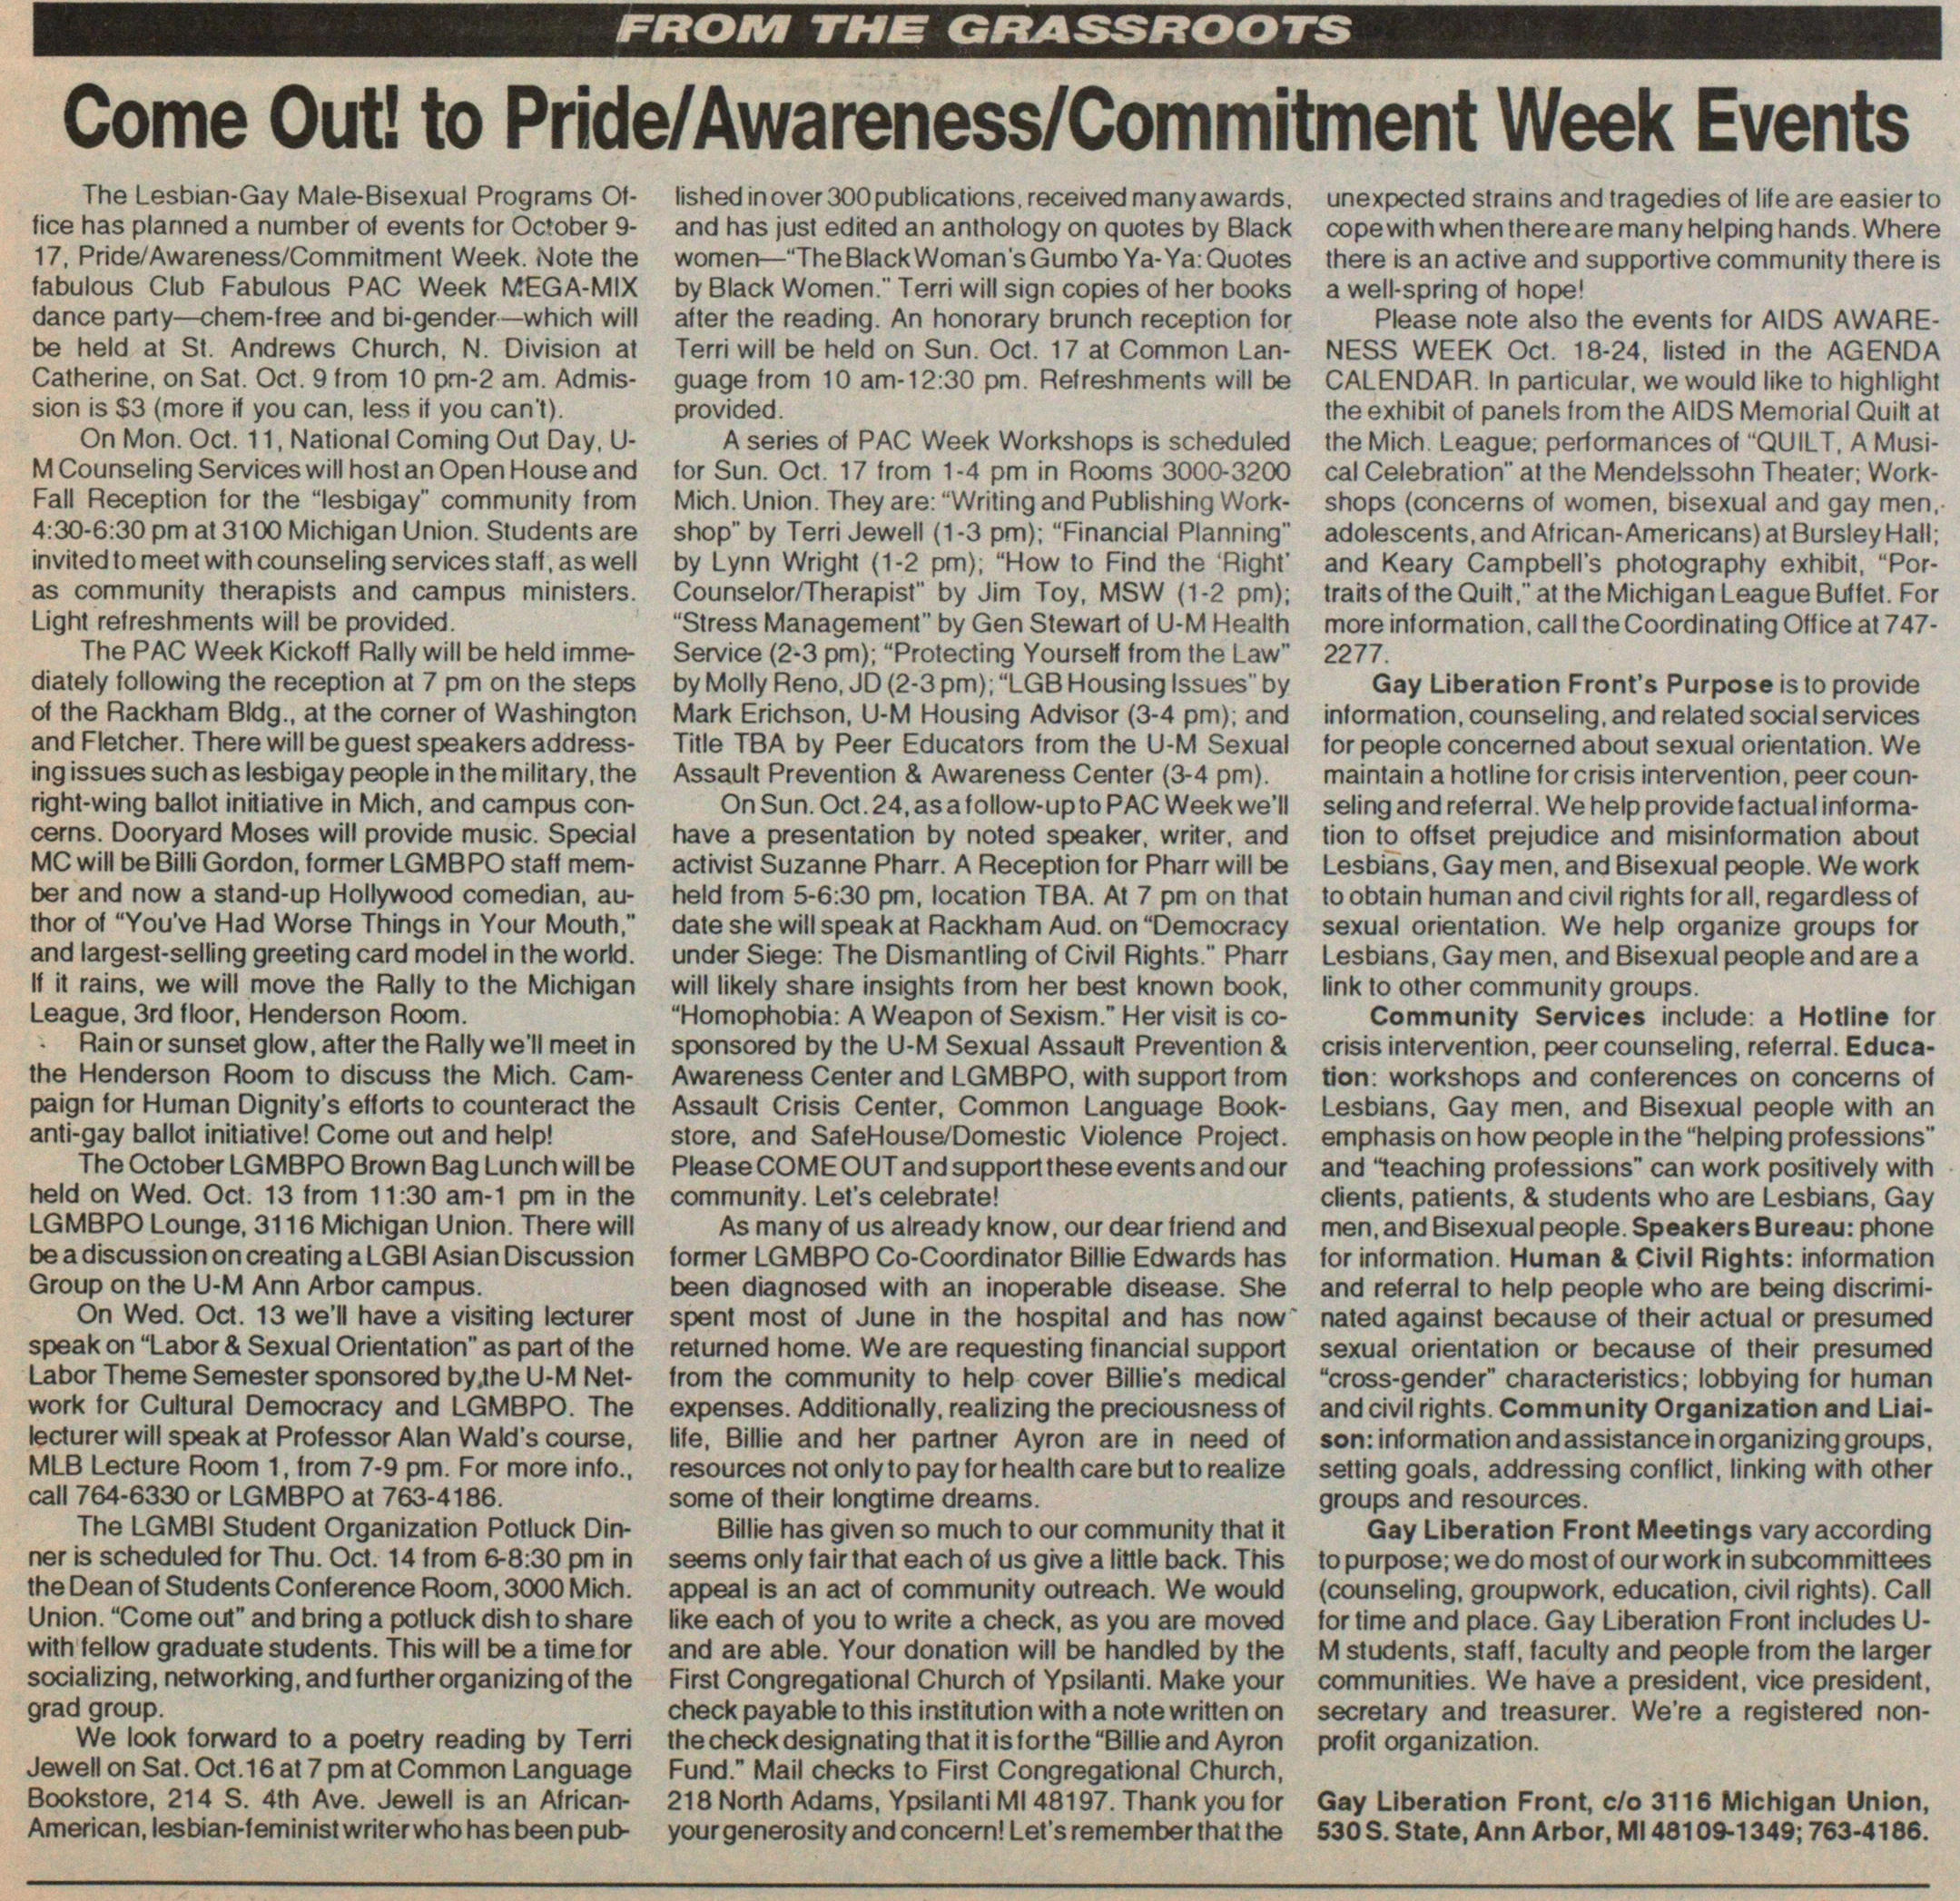 Come Out! To Prideawarenesscommitment Week Events image